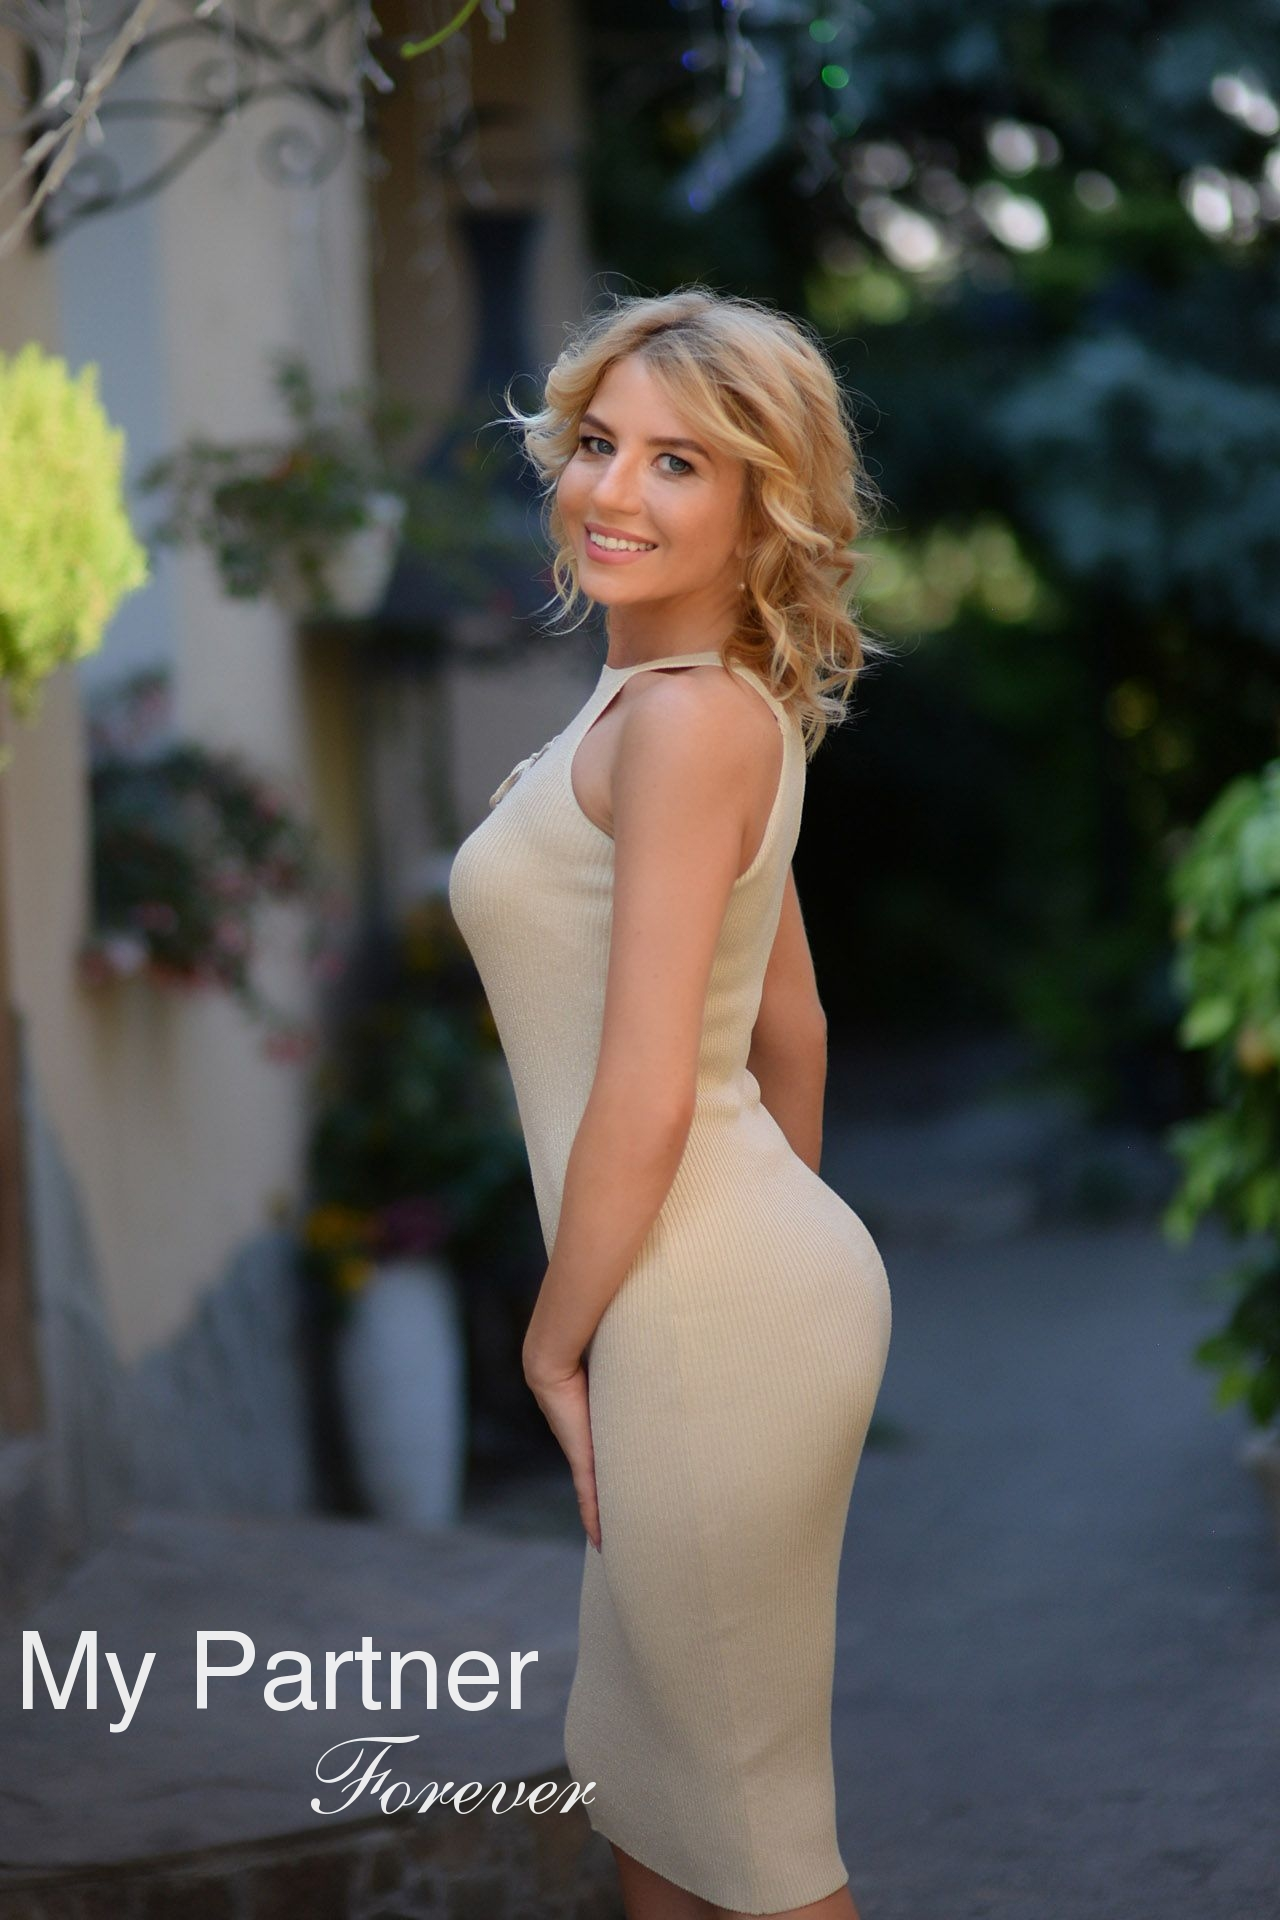 Ukrainian Girl Looking for Marriage - Anna from Kharkov, Ukraine